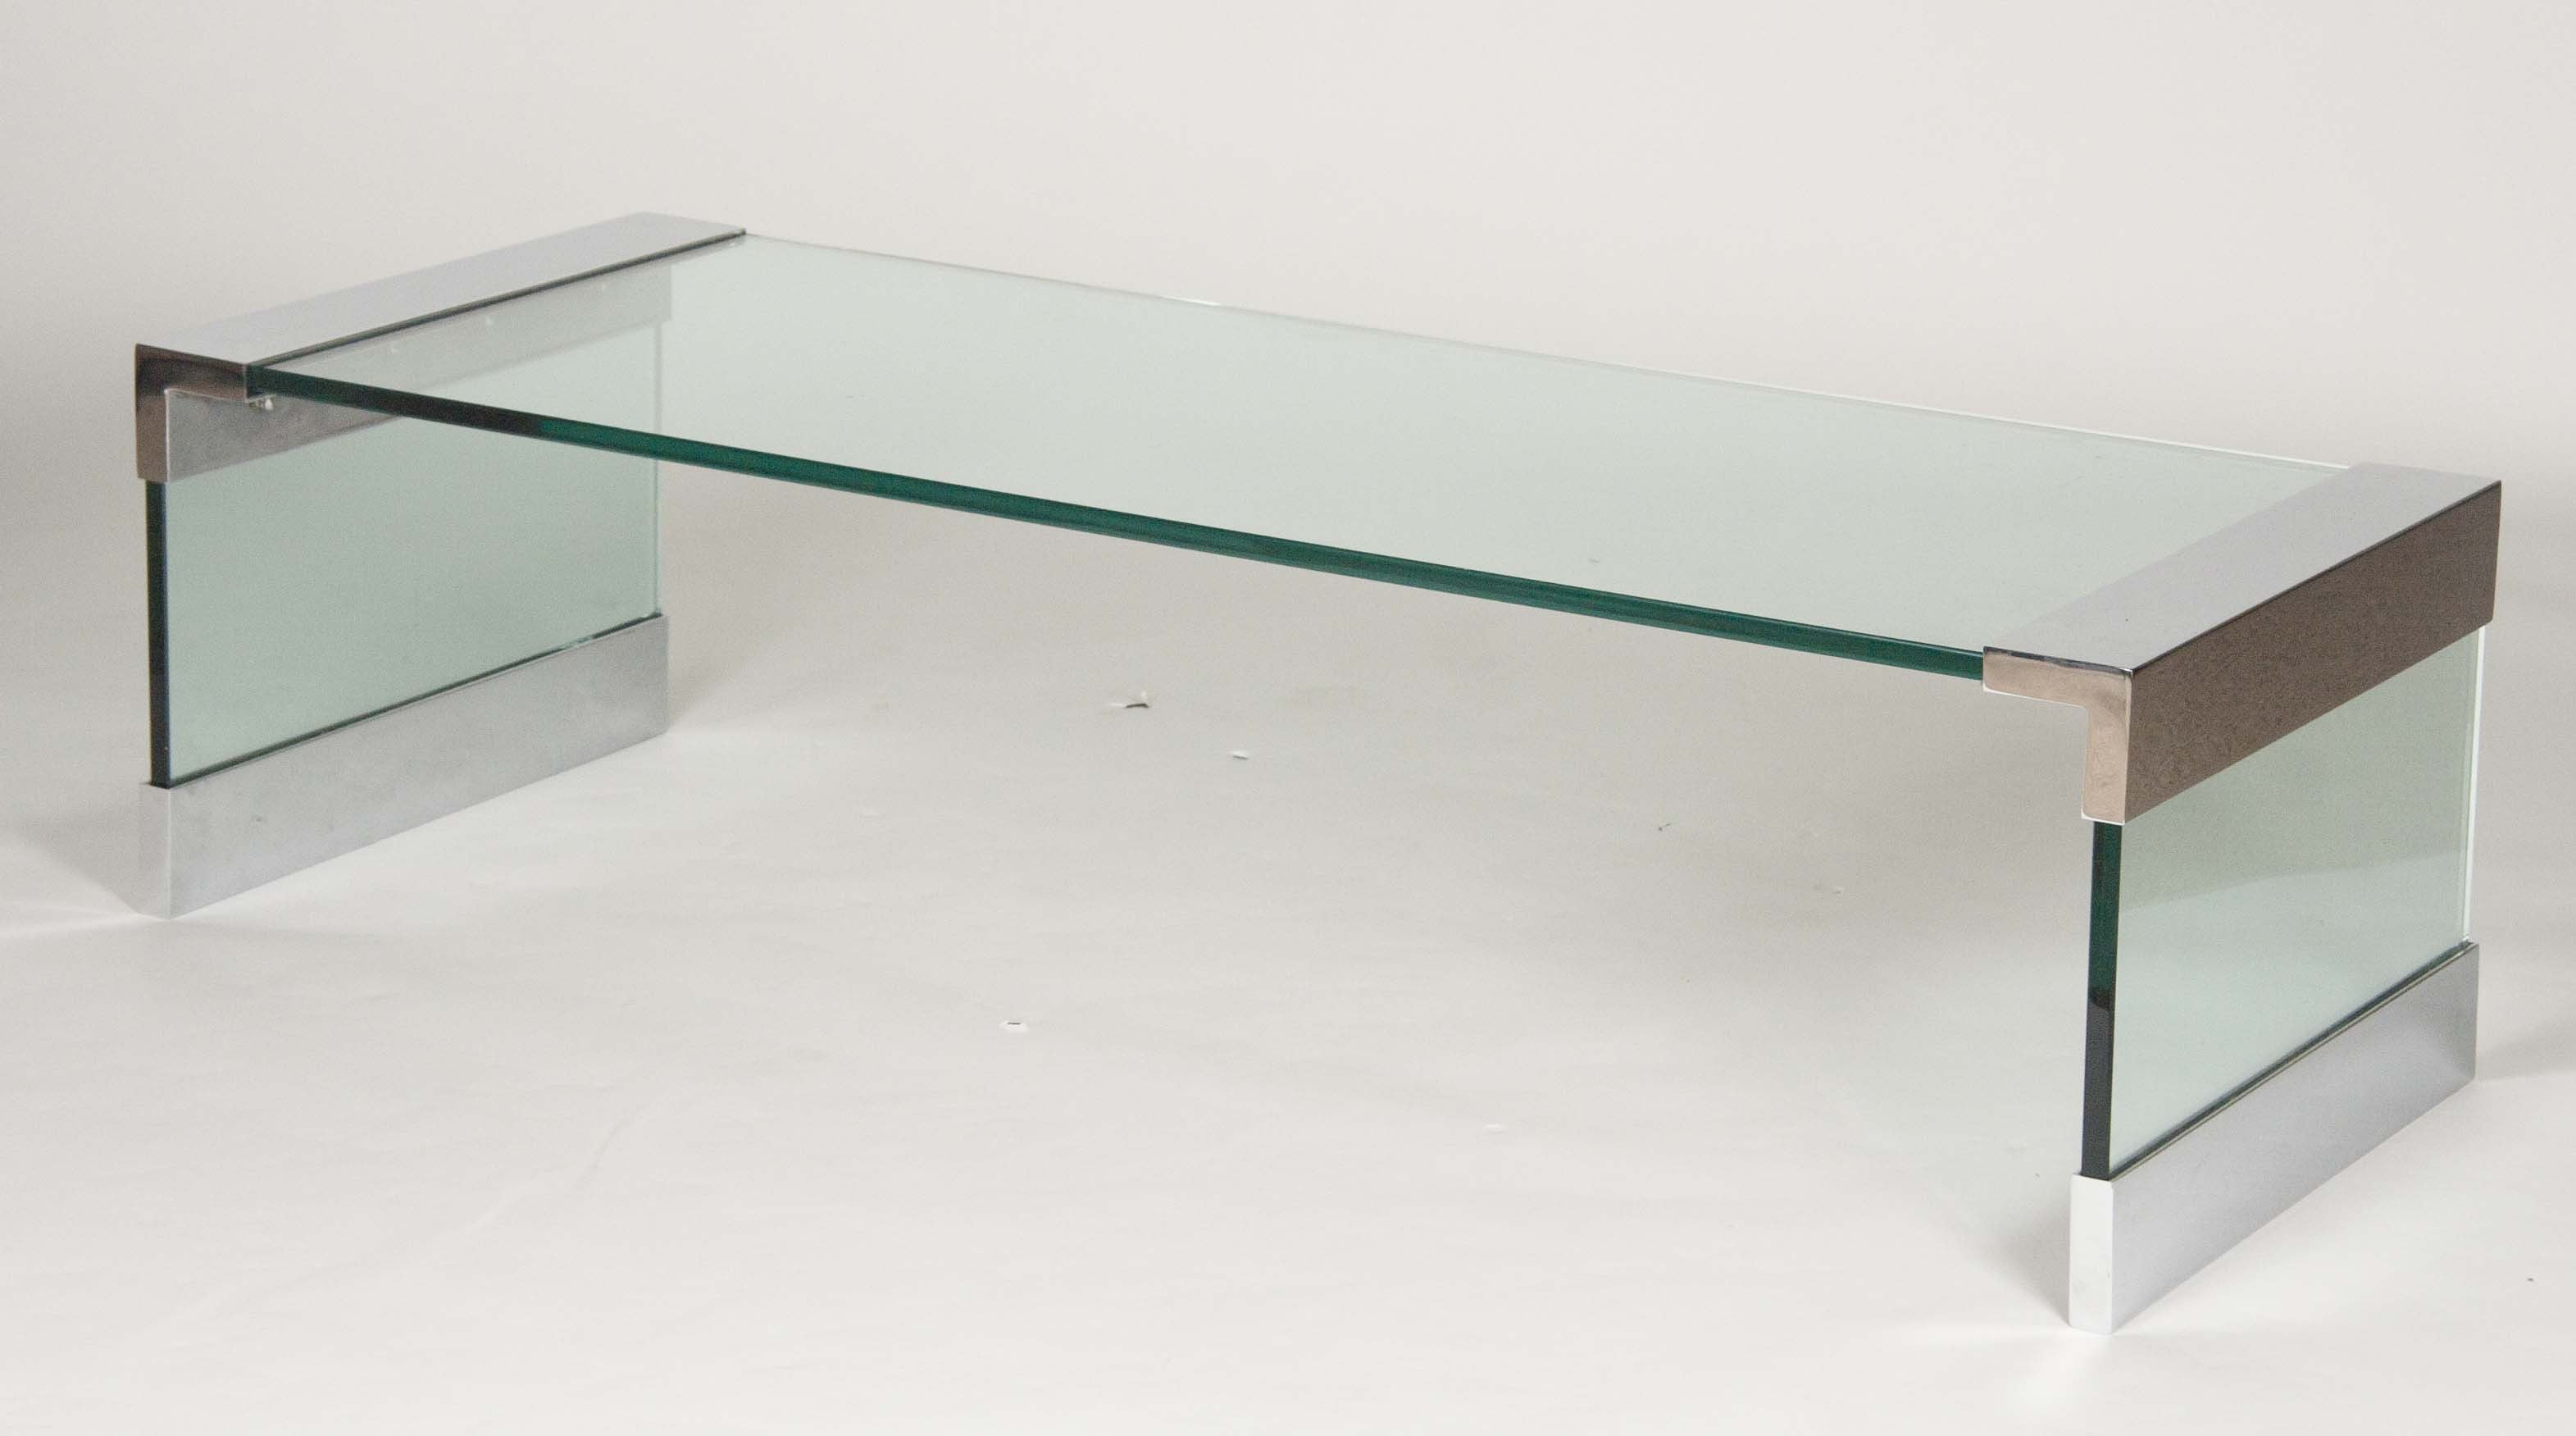 A Knoll Glass Waterfall Coffee Table with Nickel Metal and Glass